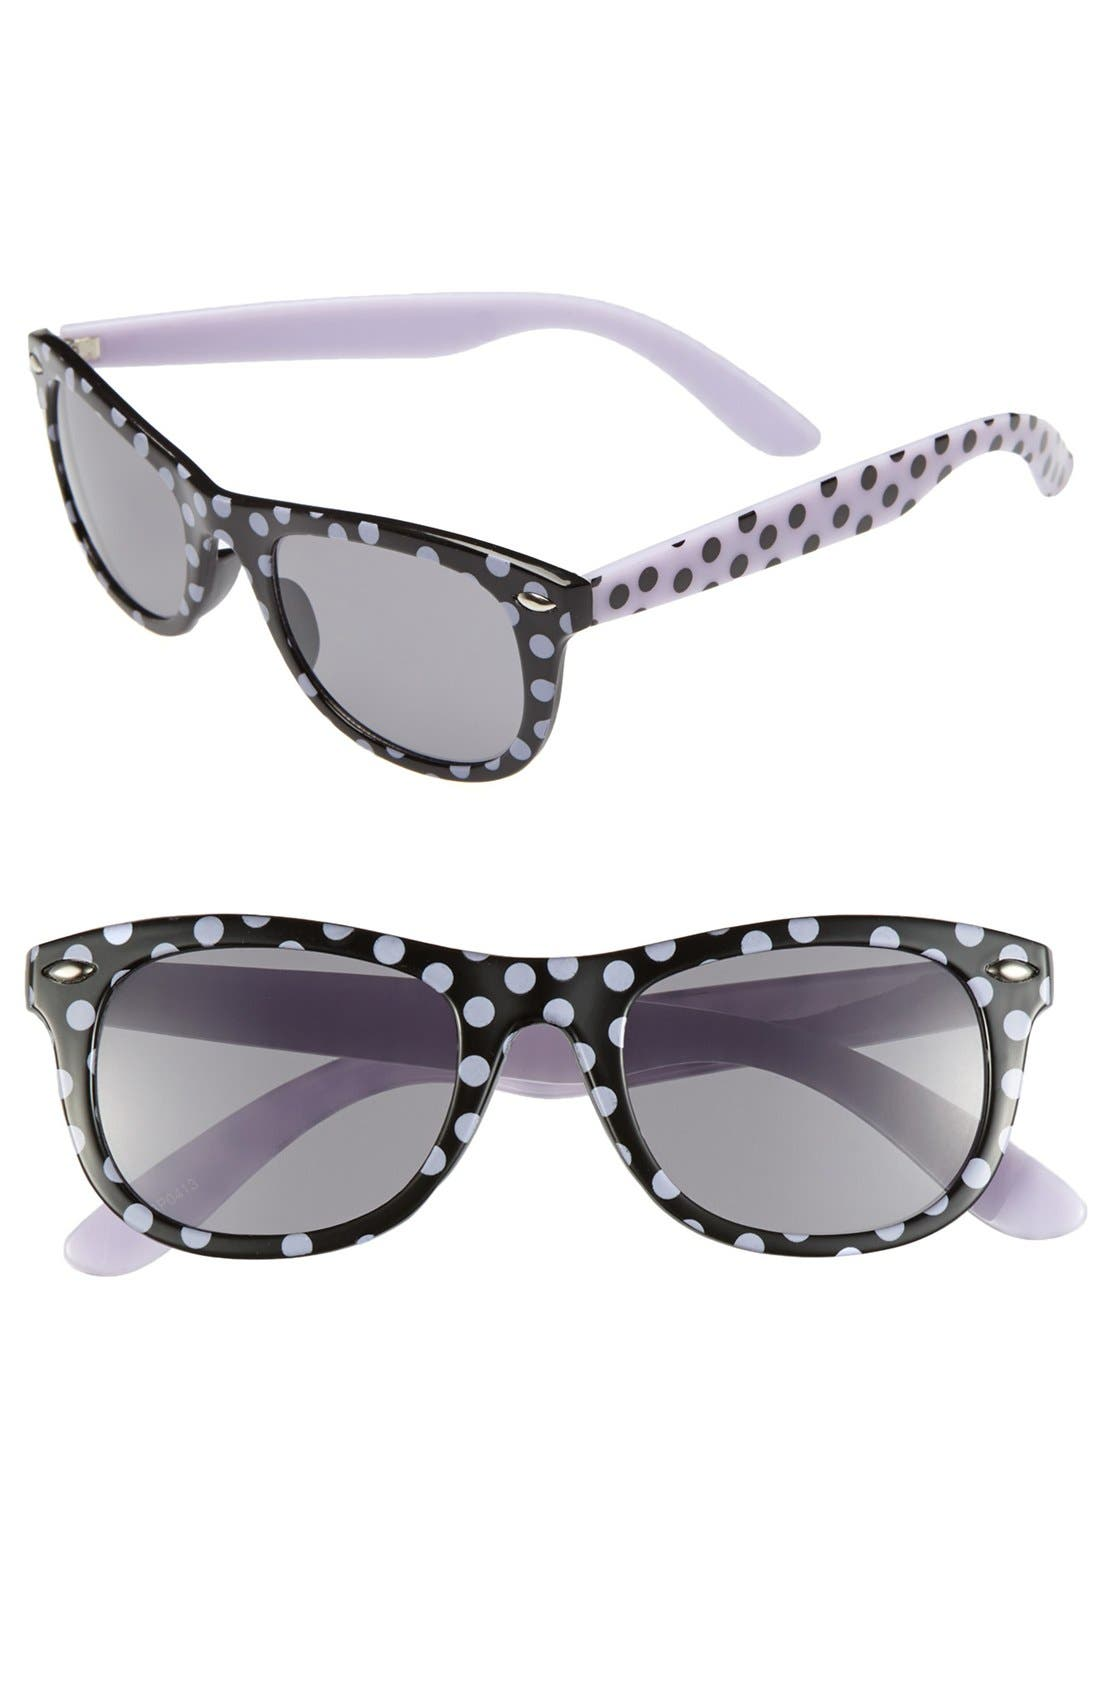 Main Image - Fantas Eyes Print Sunglasses (Girls)